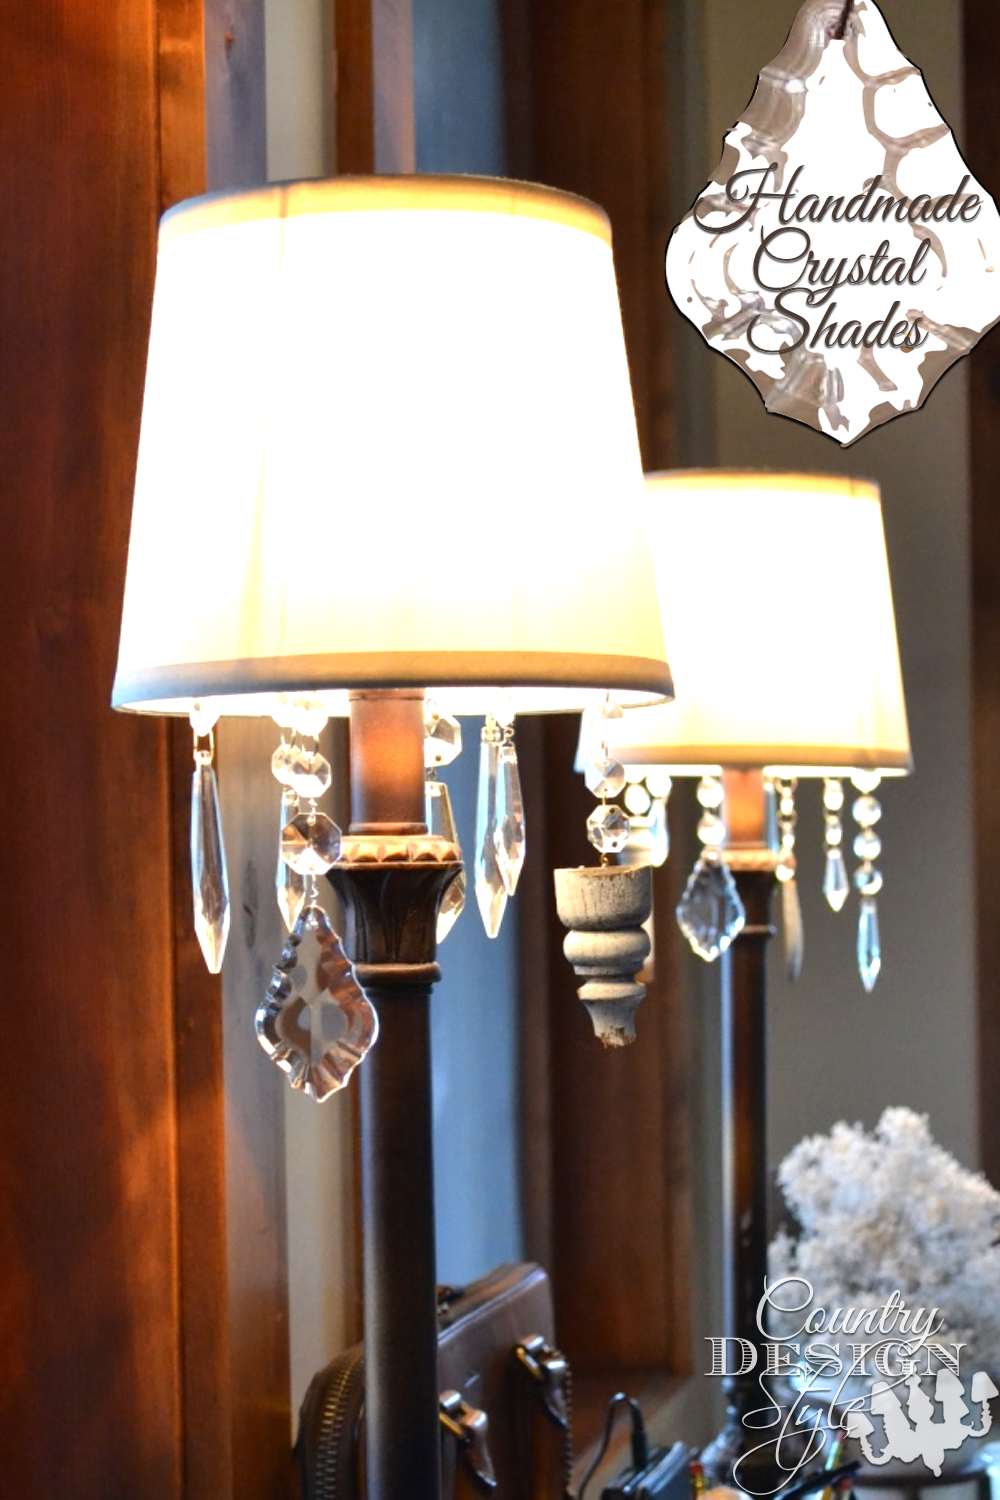 Easy trick to add hanging crystals to basic inexpensive lamp shades. Country Design Style